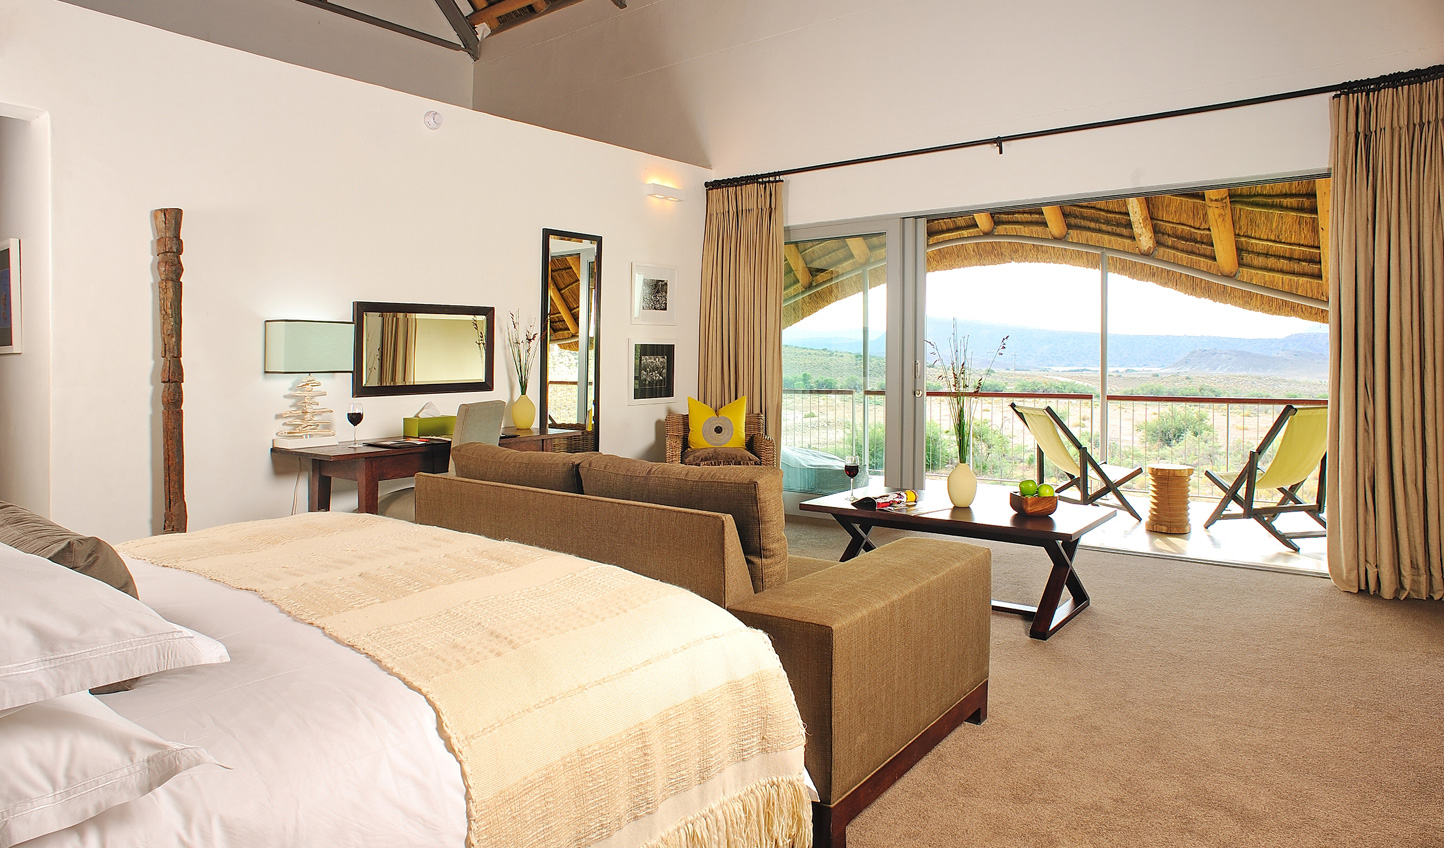 Light, airy rooms with unbeatable views at Gondwana